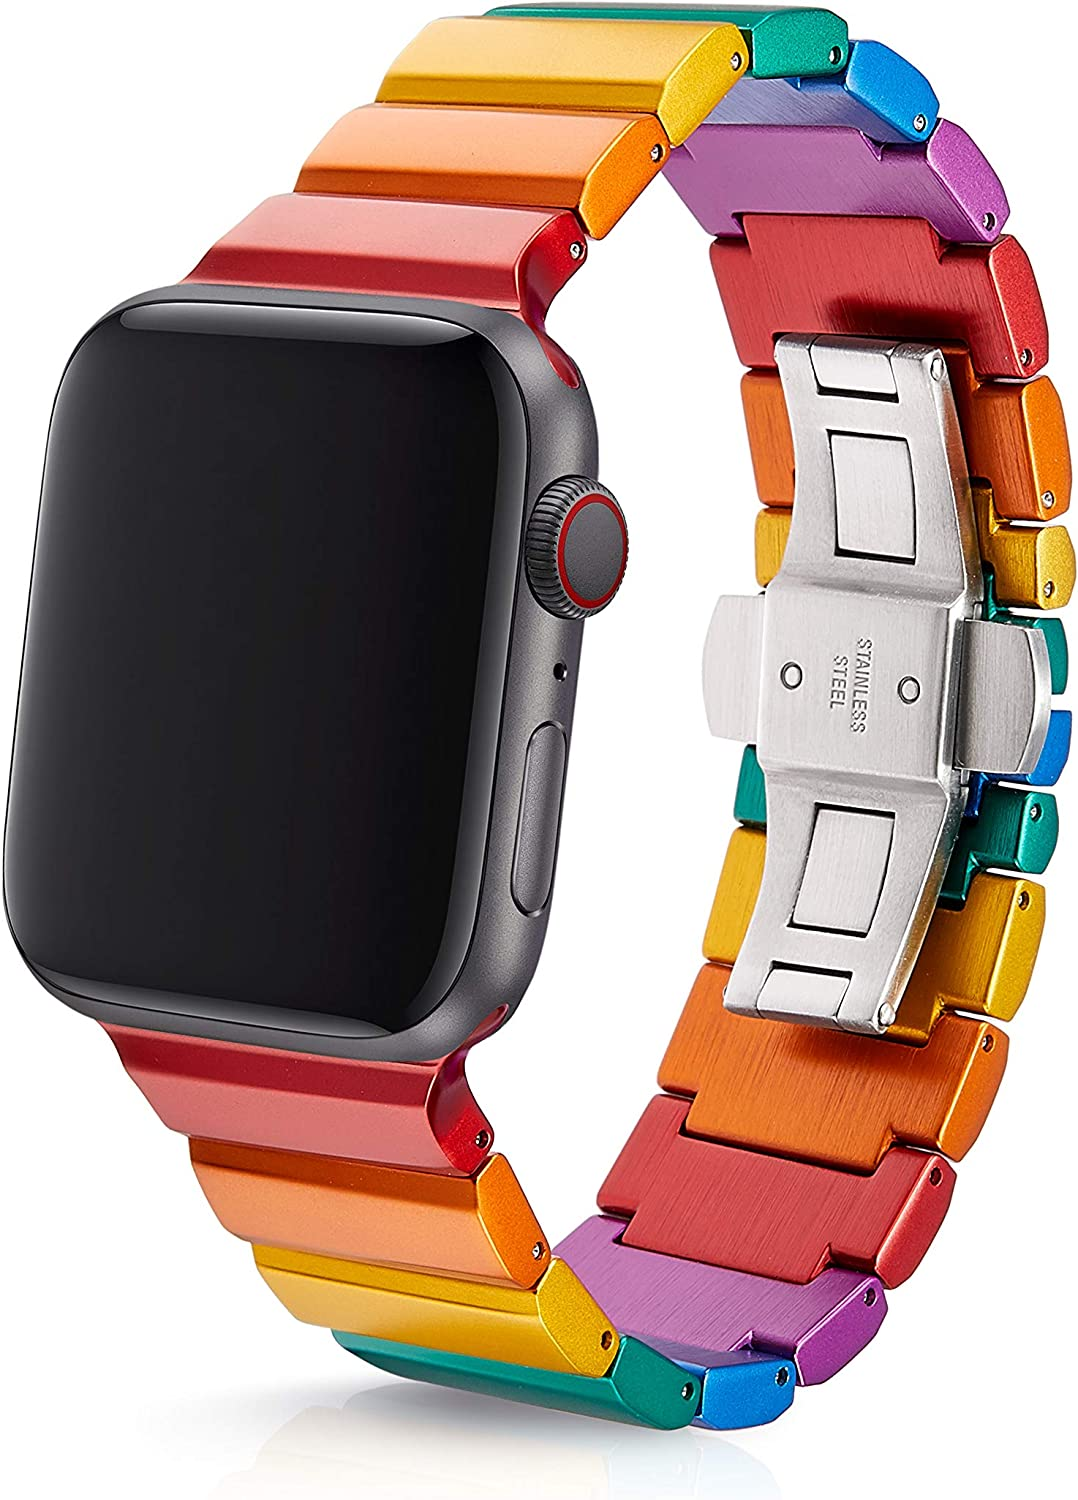 42/44mm JUUK Ligero Rainbow Premium Watch Band Made for The Apple Watch, Using Aircraft Grade, Hard Anodized 6000 Series Aluminum with a Solid Stainless Steel Butterfly deployant Buckle (Matte)